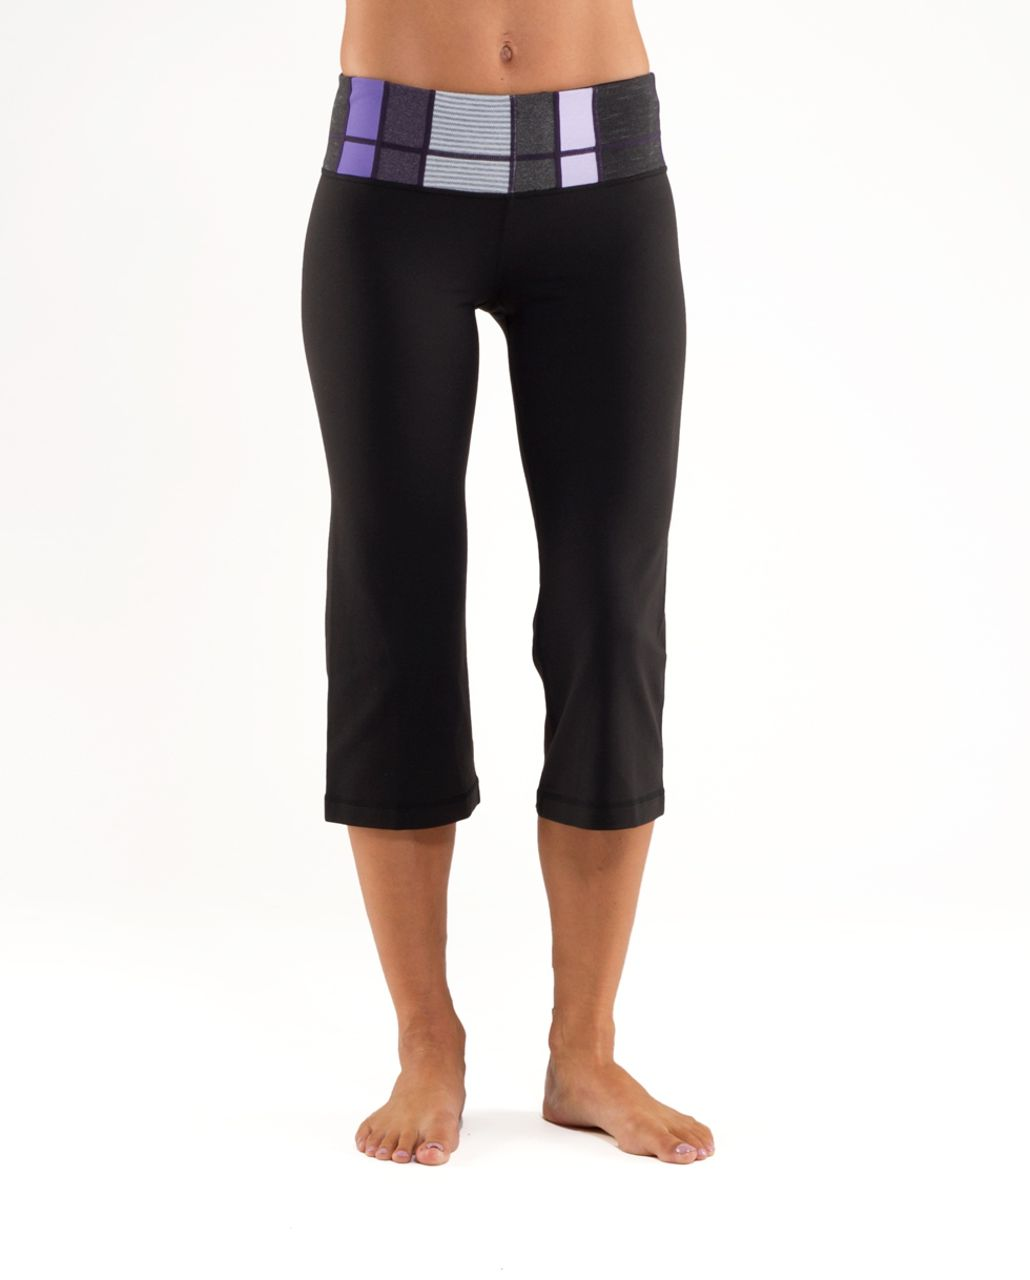 Lululemon Groove Crop - Qw18- Black /  Quilting Winter 8 /  Quilting Winter 8